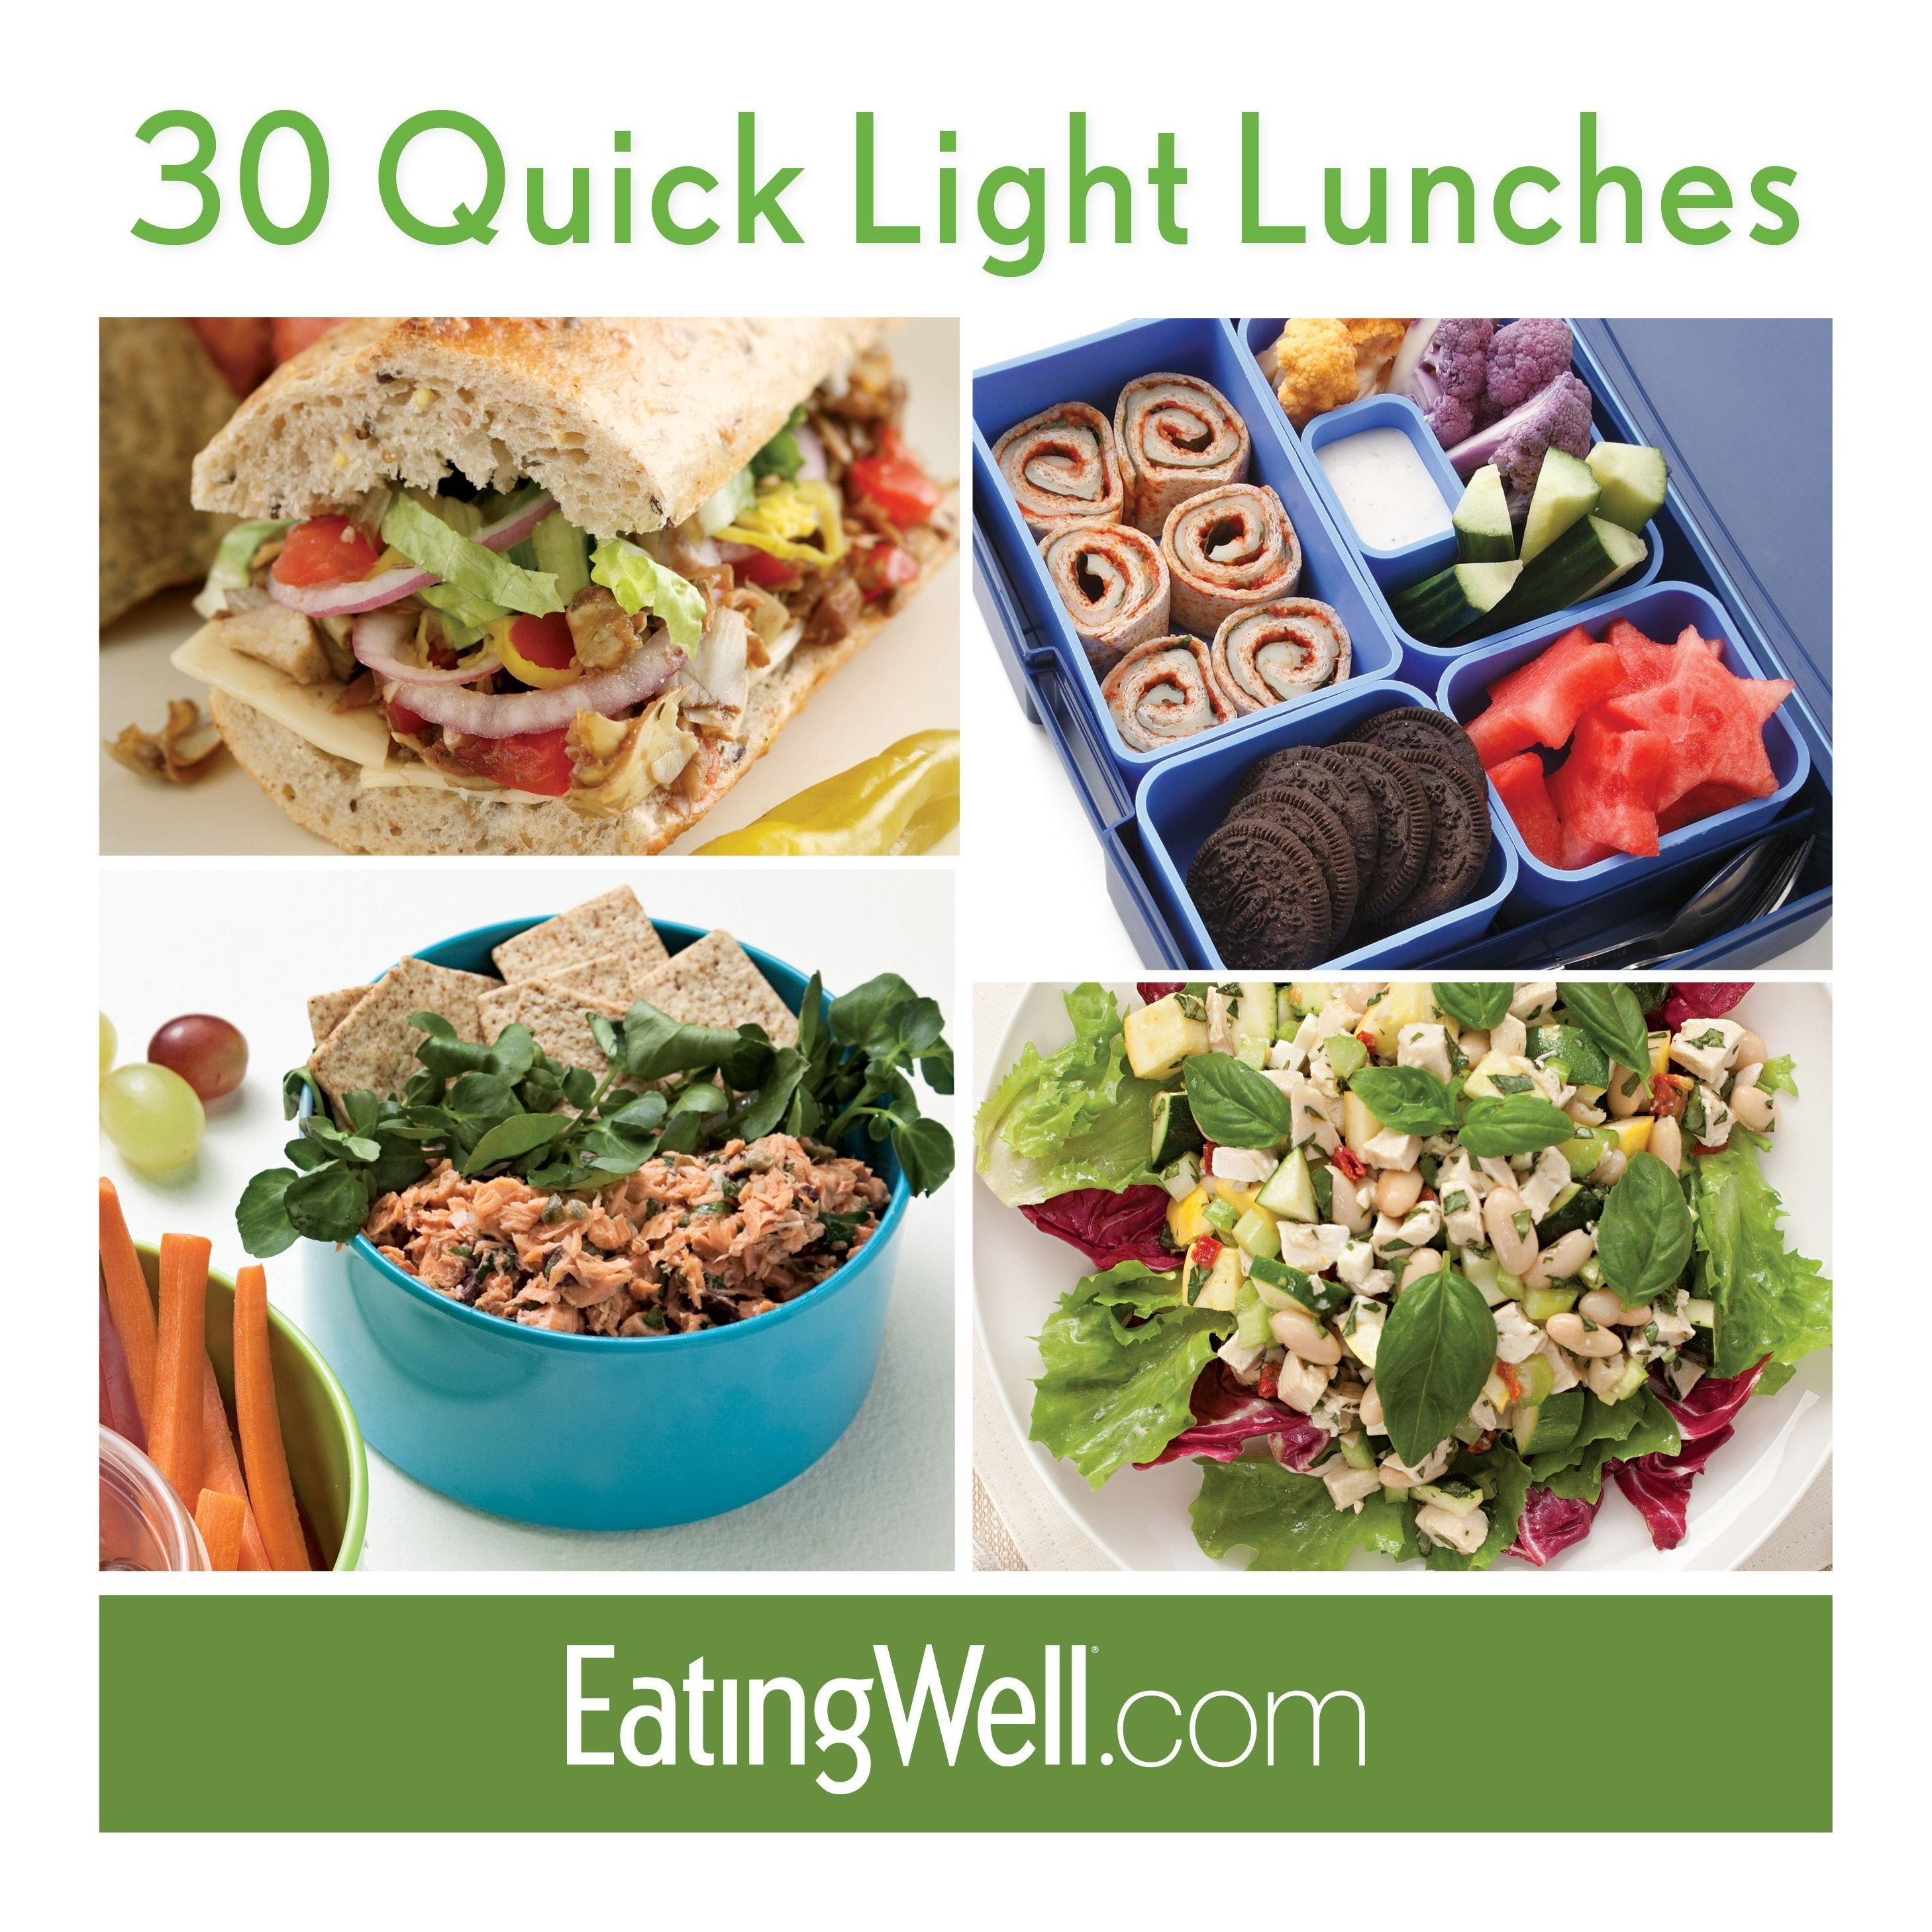 10 Perfect Light Lunch Ideas For Work sandwiches salads bento boxes and more healthy low calorie lunch 5 2021